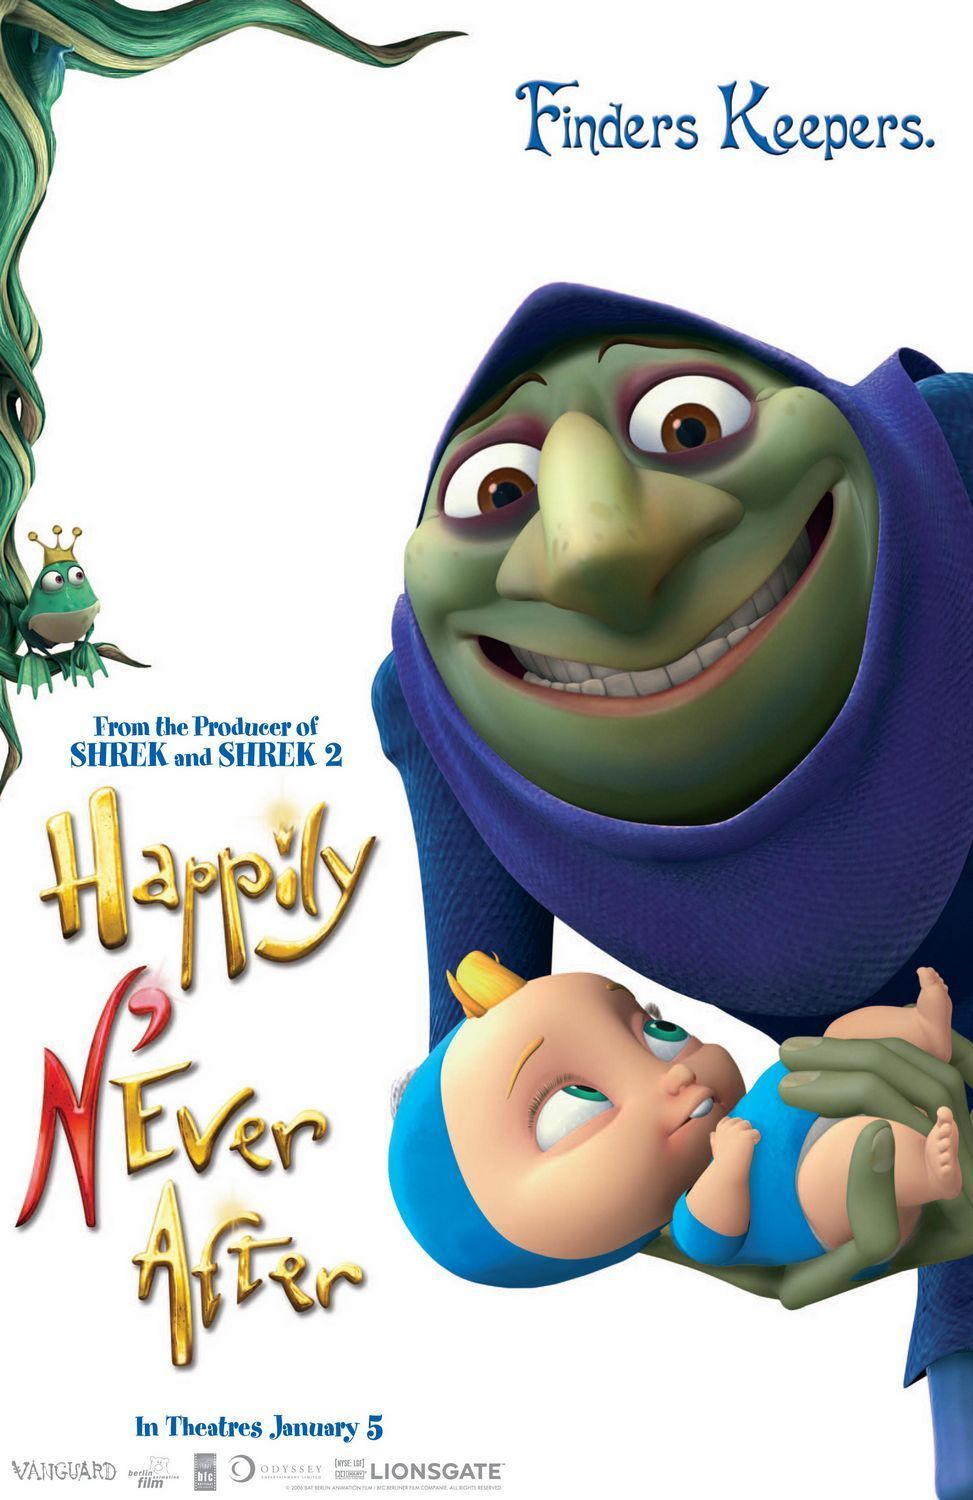 Happily-N-ever-After-posters-happily-never-after-9571287-973-1500.jpg